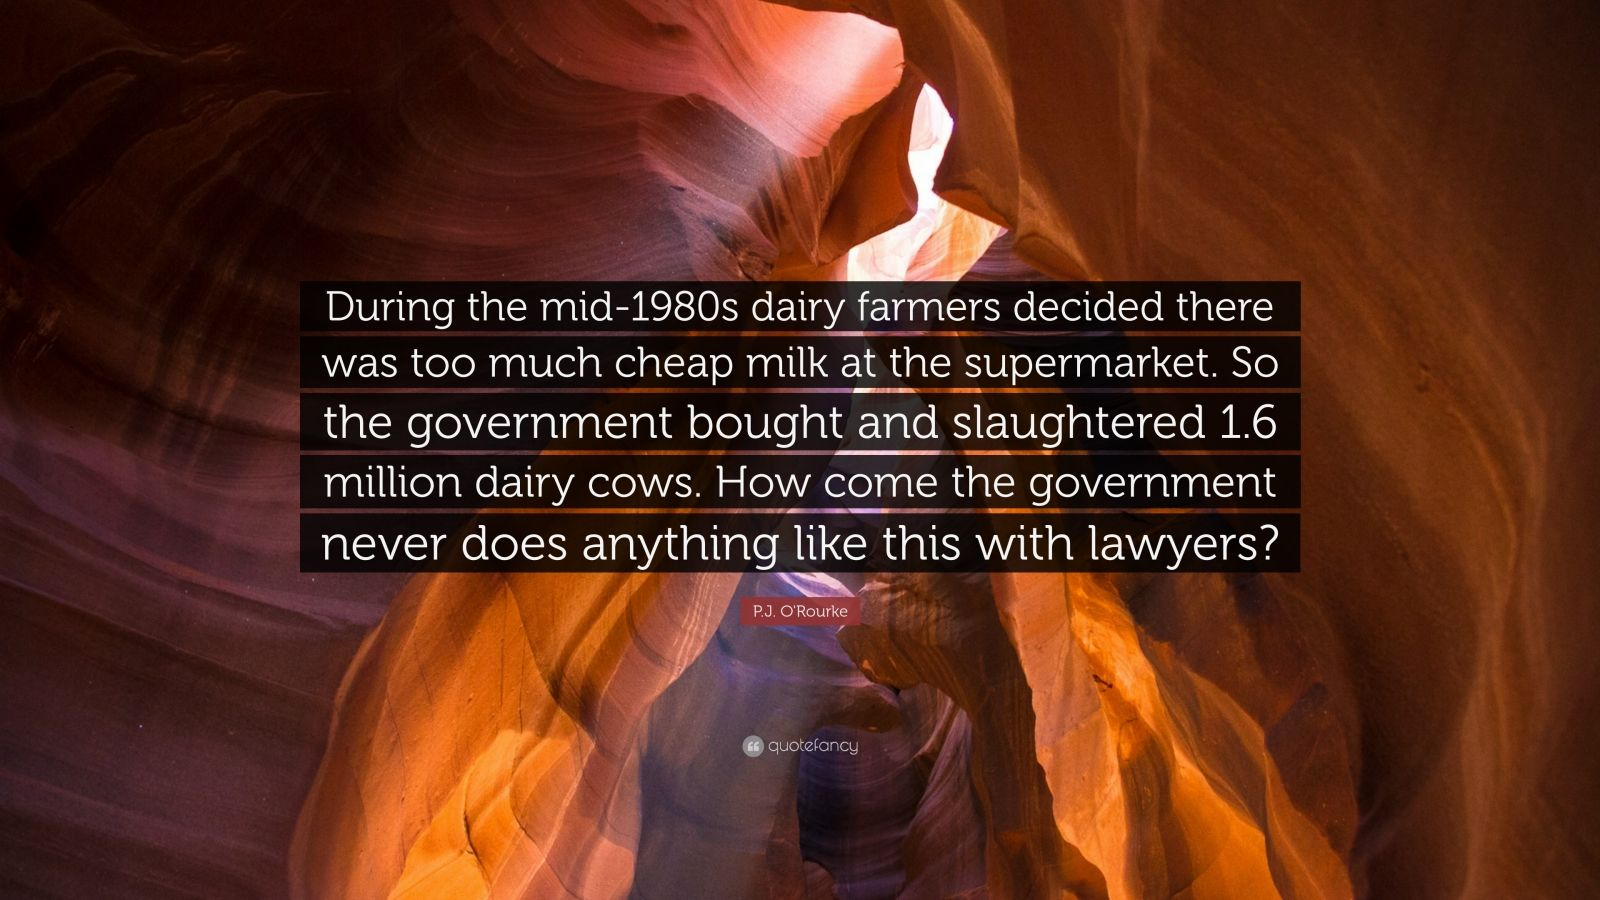 "P.J. O'Rourke Quote: ""During the mid-1980s dairy farmers decided there was too much cheap milk at the supermarket. So the government bought and slaughtered 1.6 million dairy cows. How come the government never does anything like this with lawyers?"""